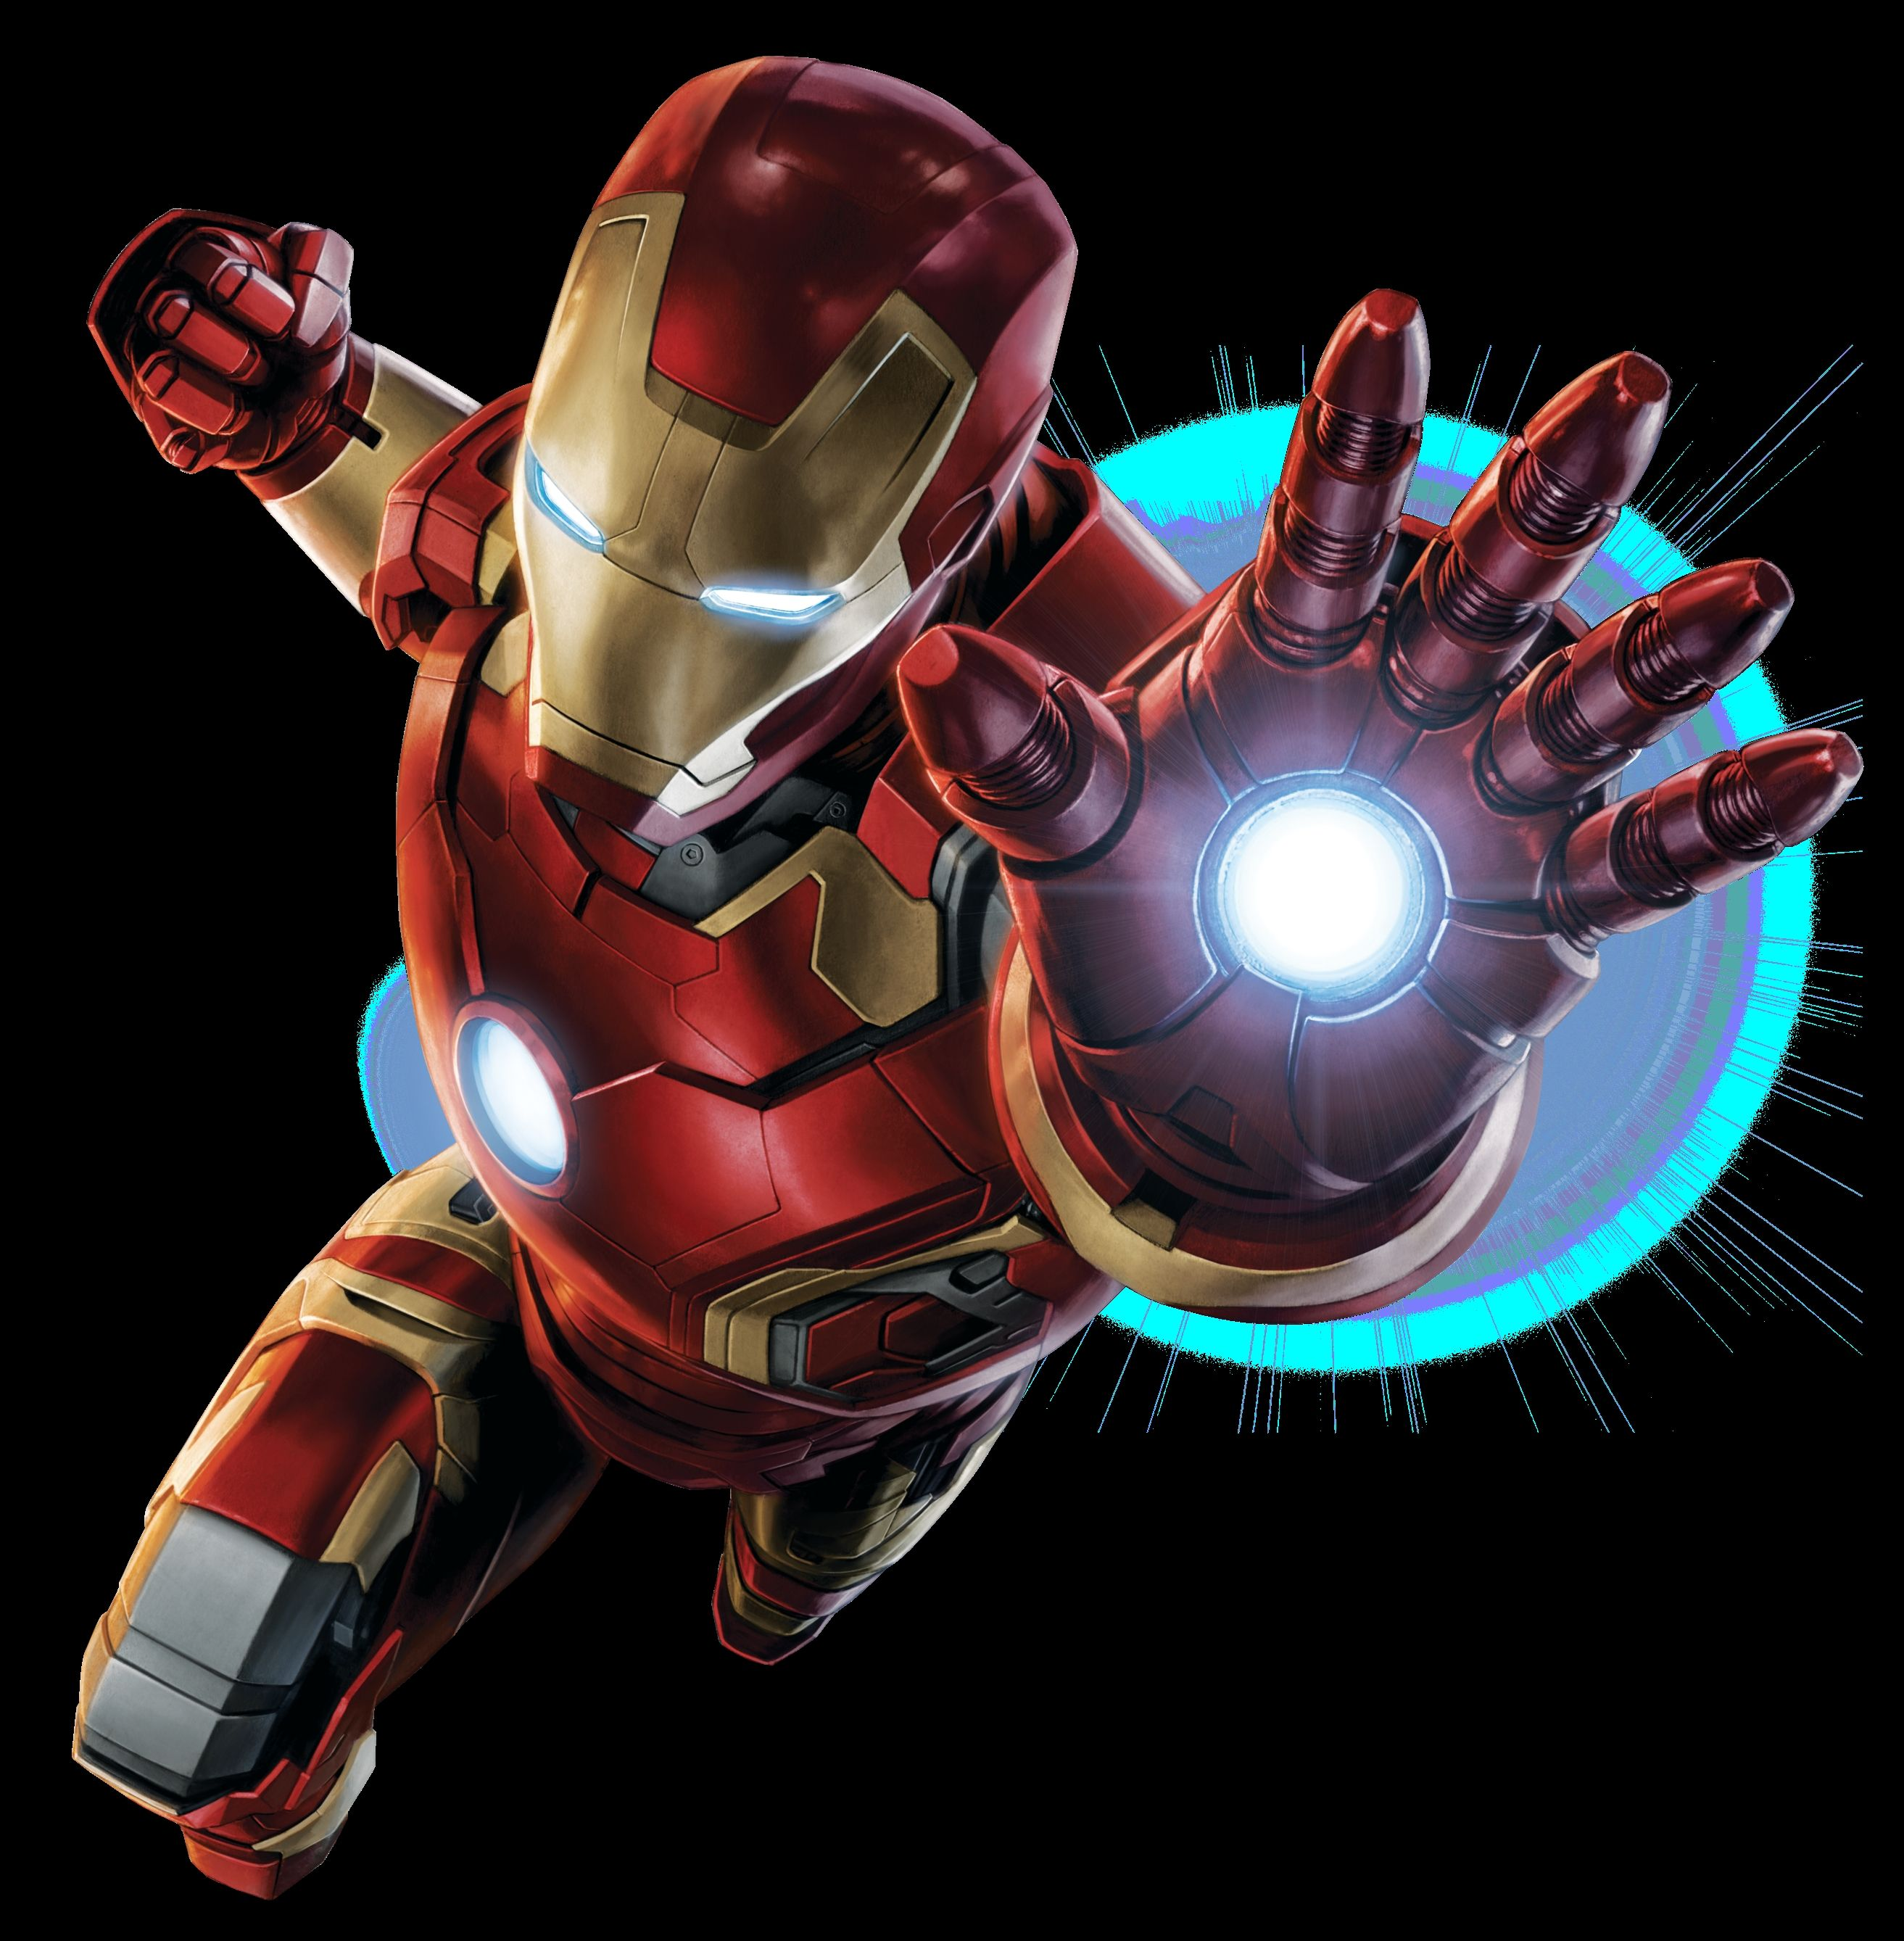 Iron Man Avengers Wallpapers